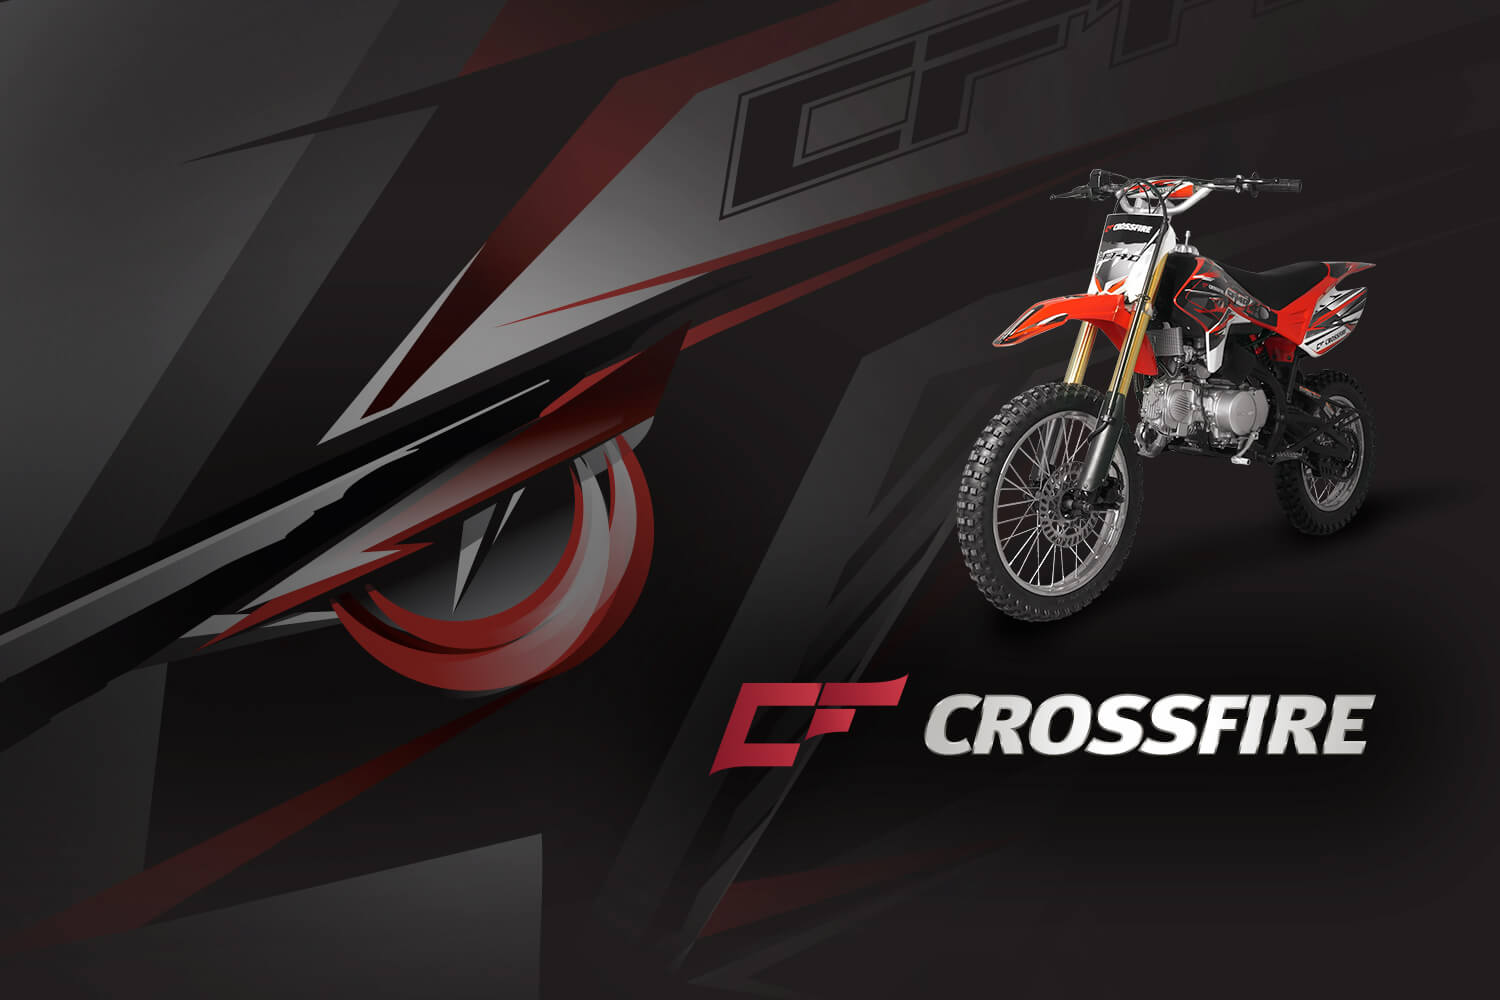 Crossfire Motorcycles - Branding and Website Design – Chris Koch – Freelance Graphic Designer